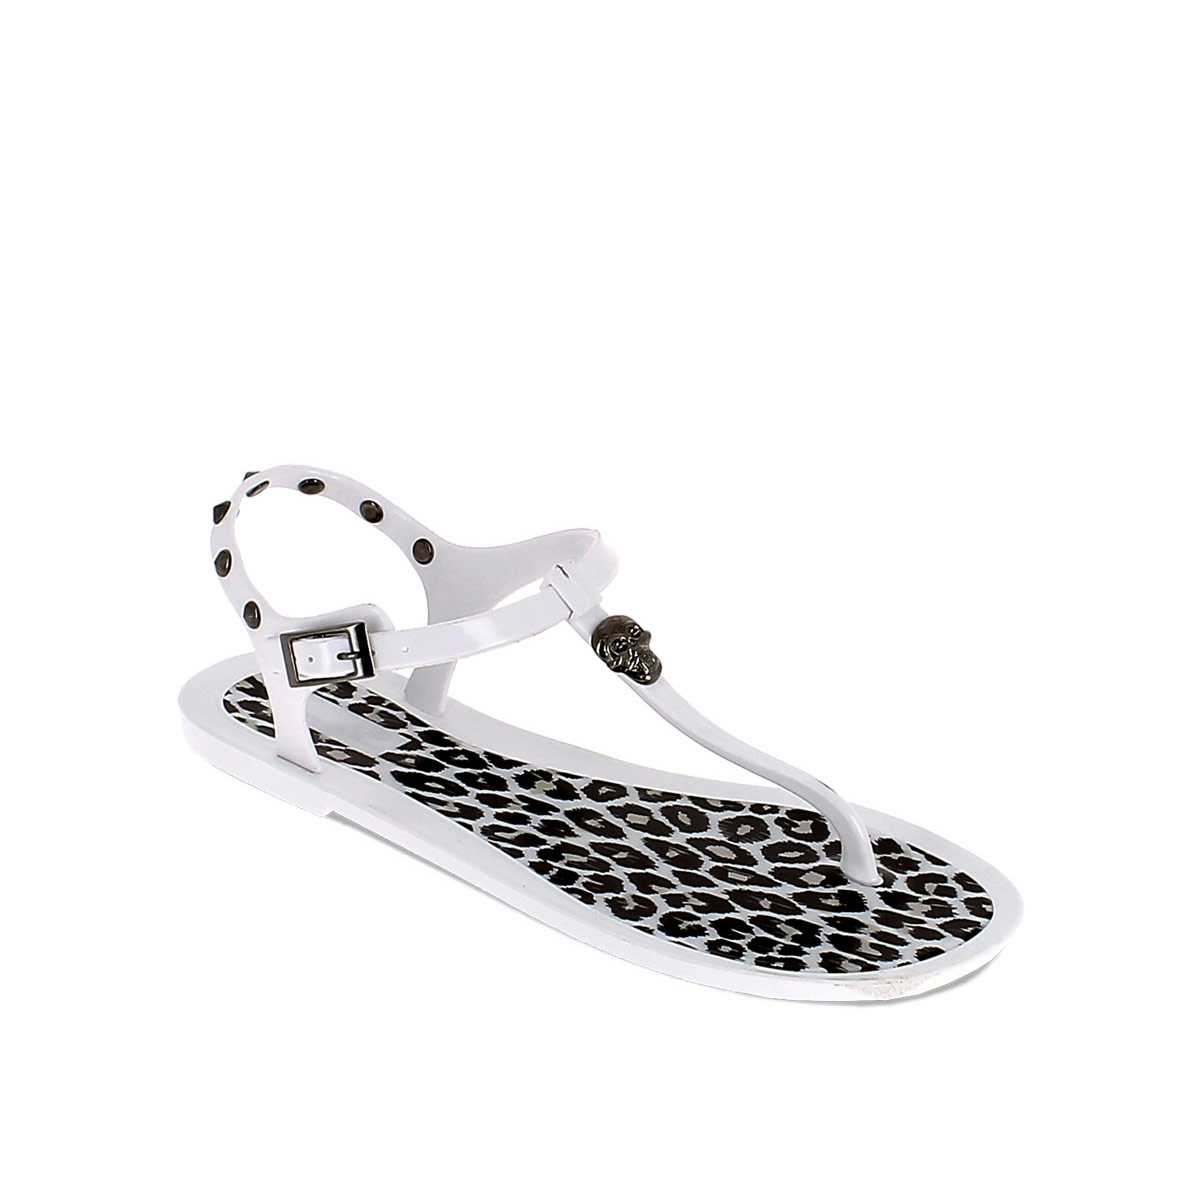 PVC THONG SANDAL WITH LEOPARD PATTERN INSOLE